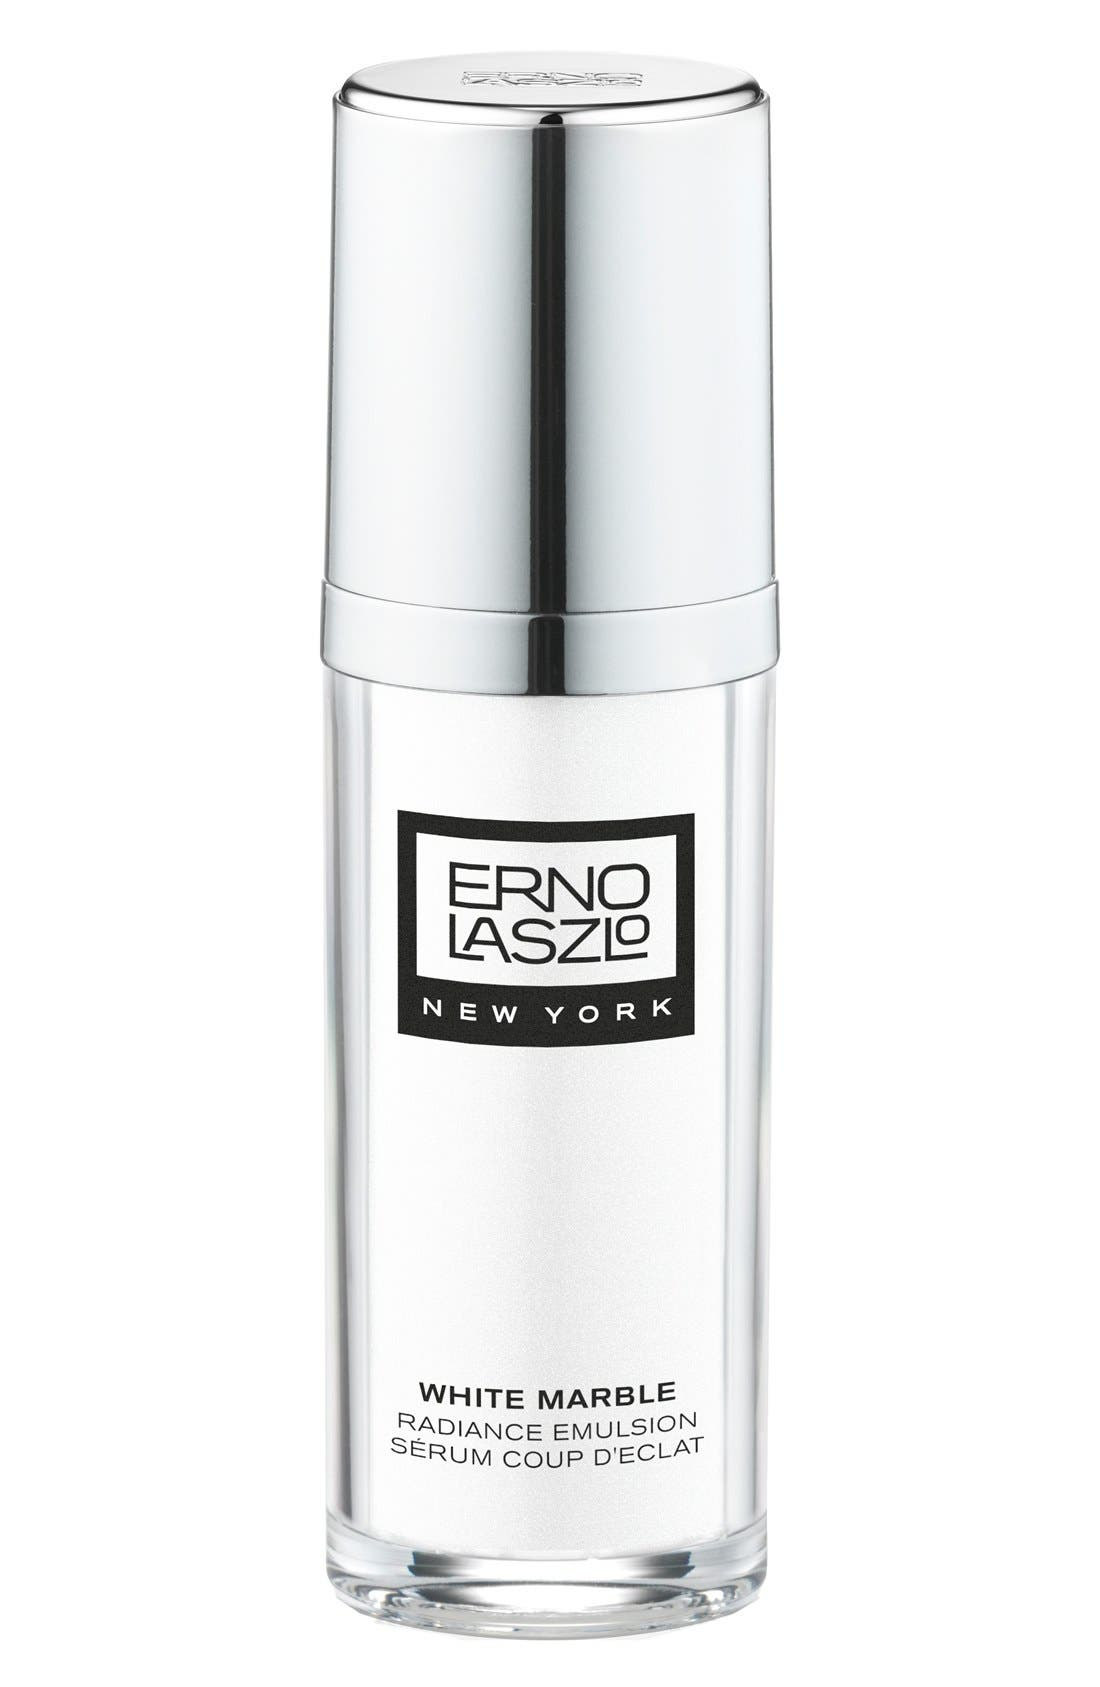 Erno Laszlo Skincare Beauty Fragrance And Personal Care